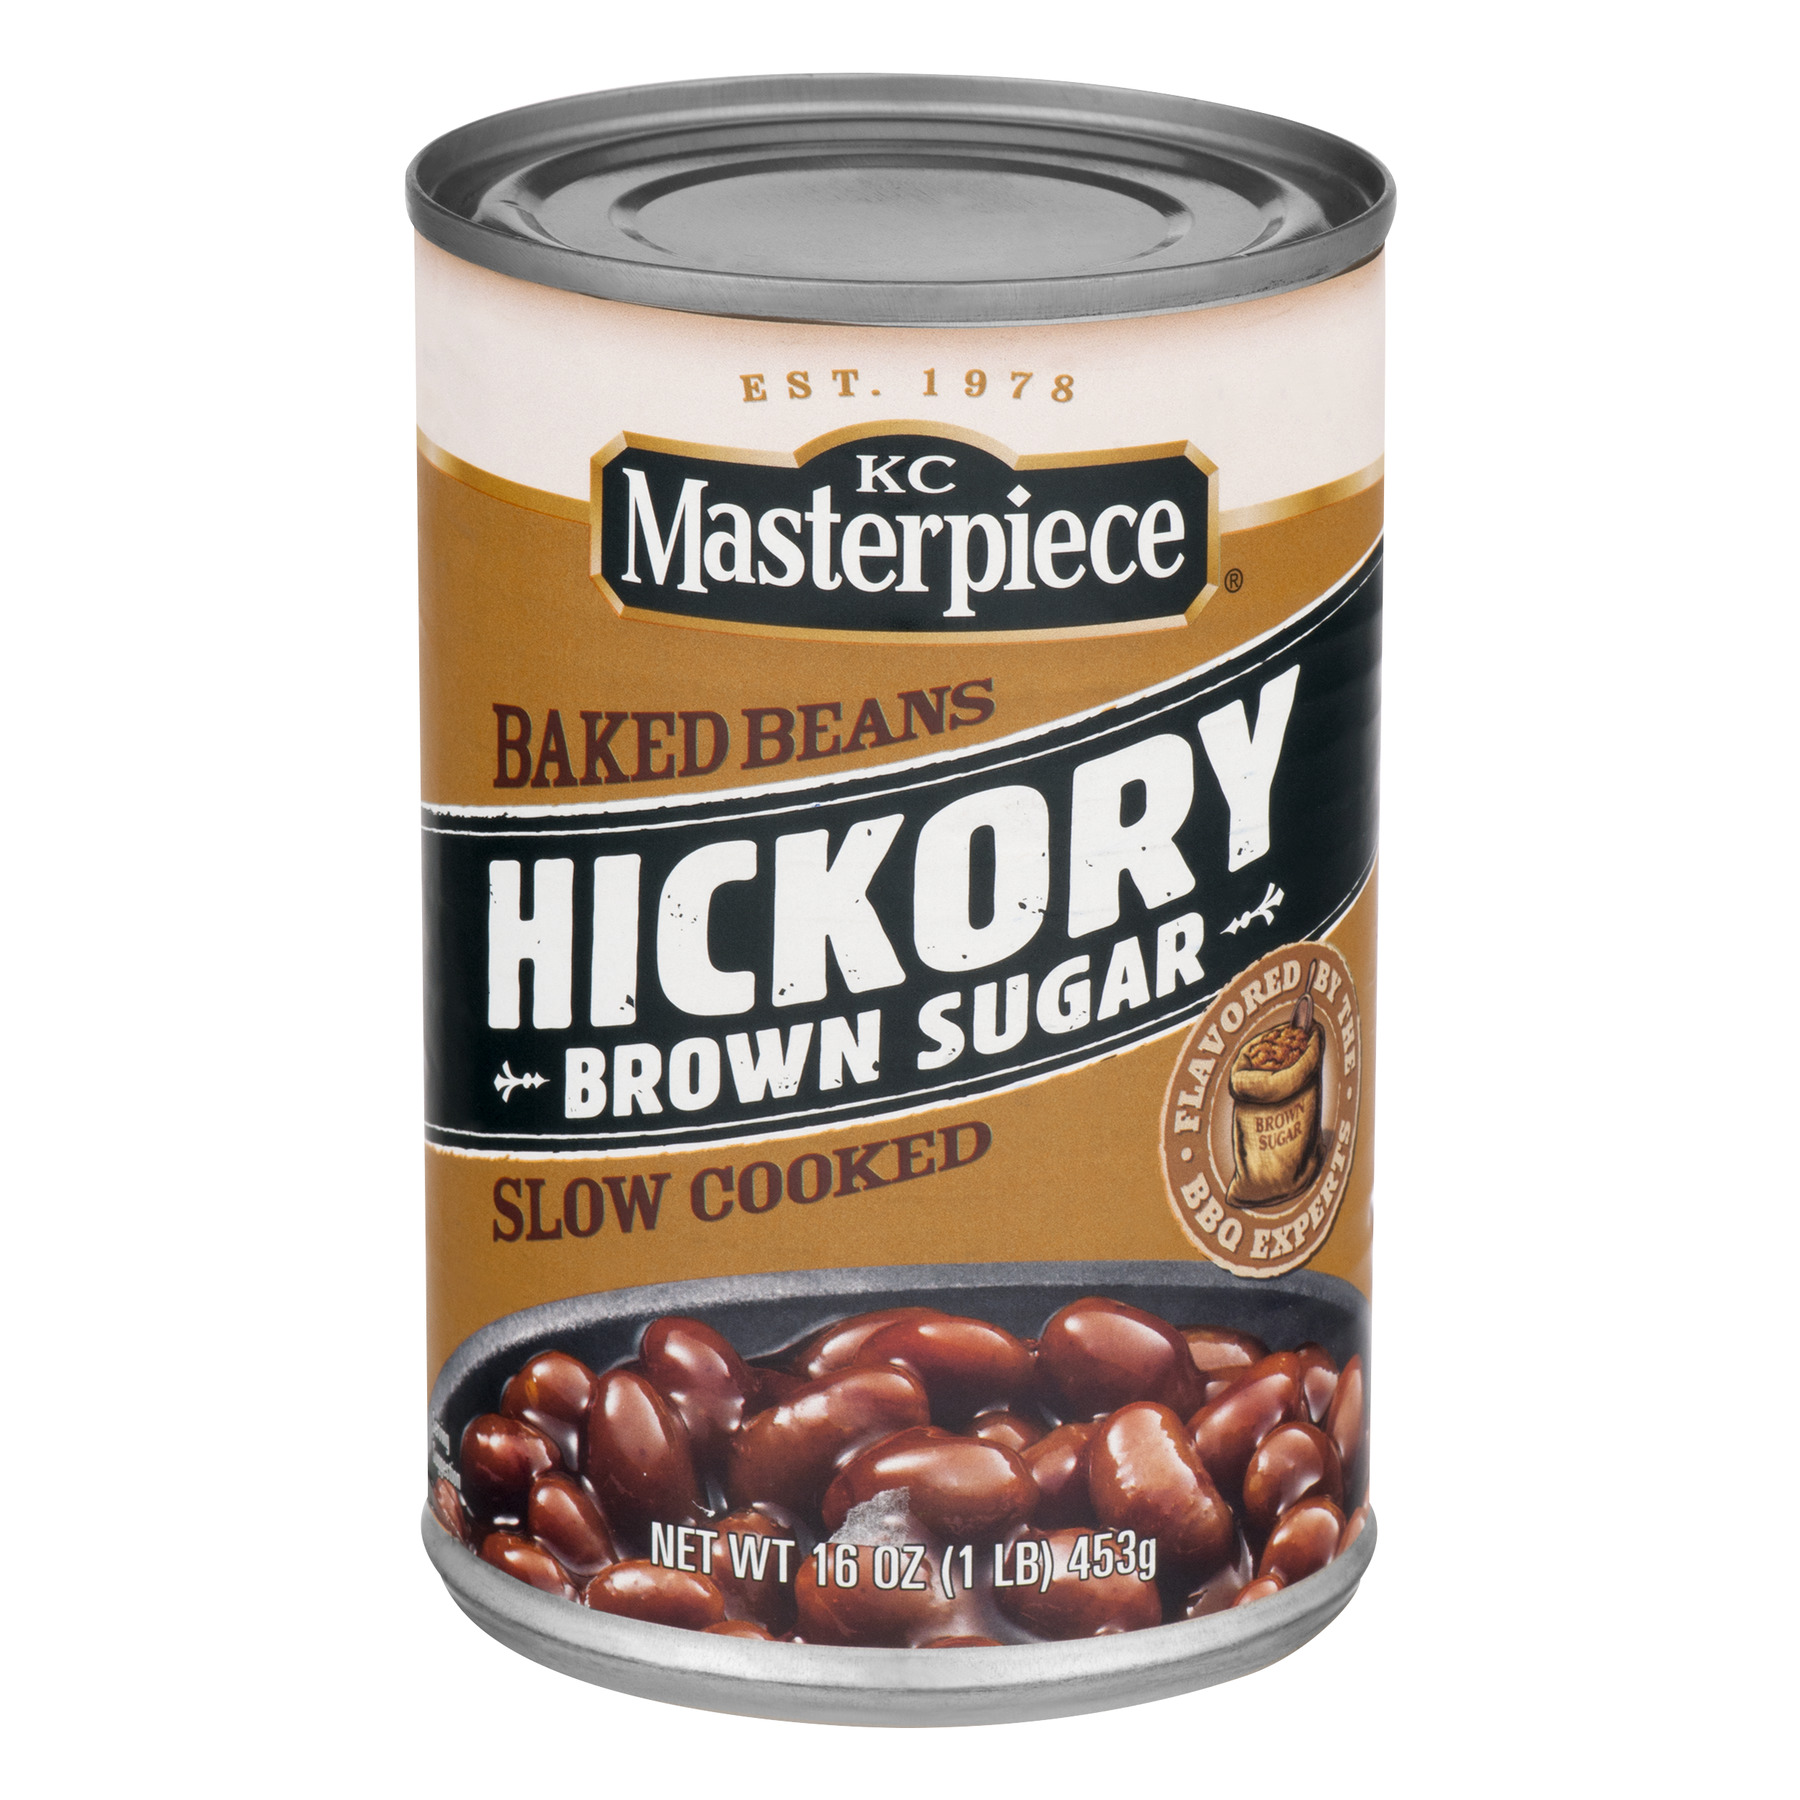 KC Masterpiece Hickory Brown Sugar Baked Beans, 16 oz